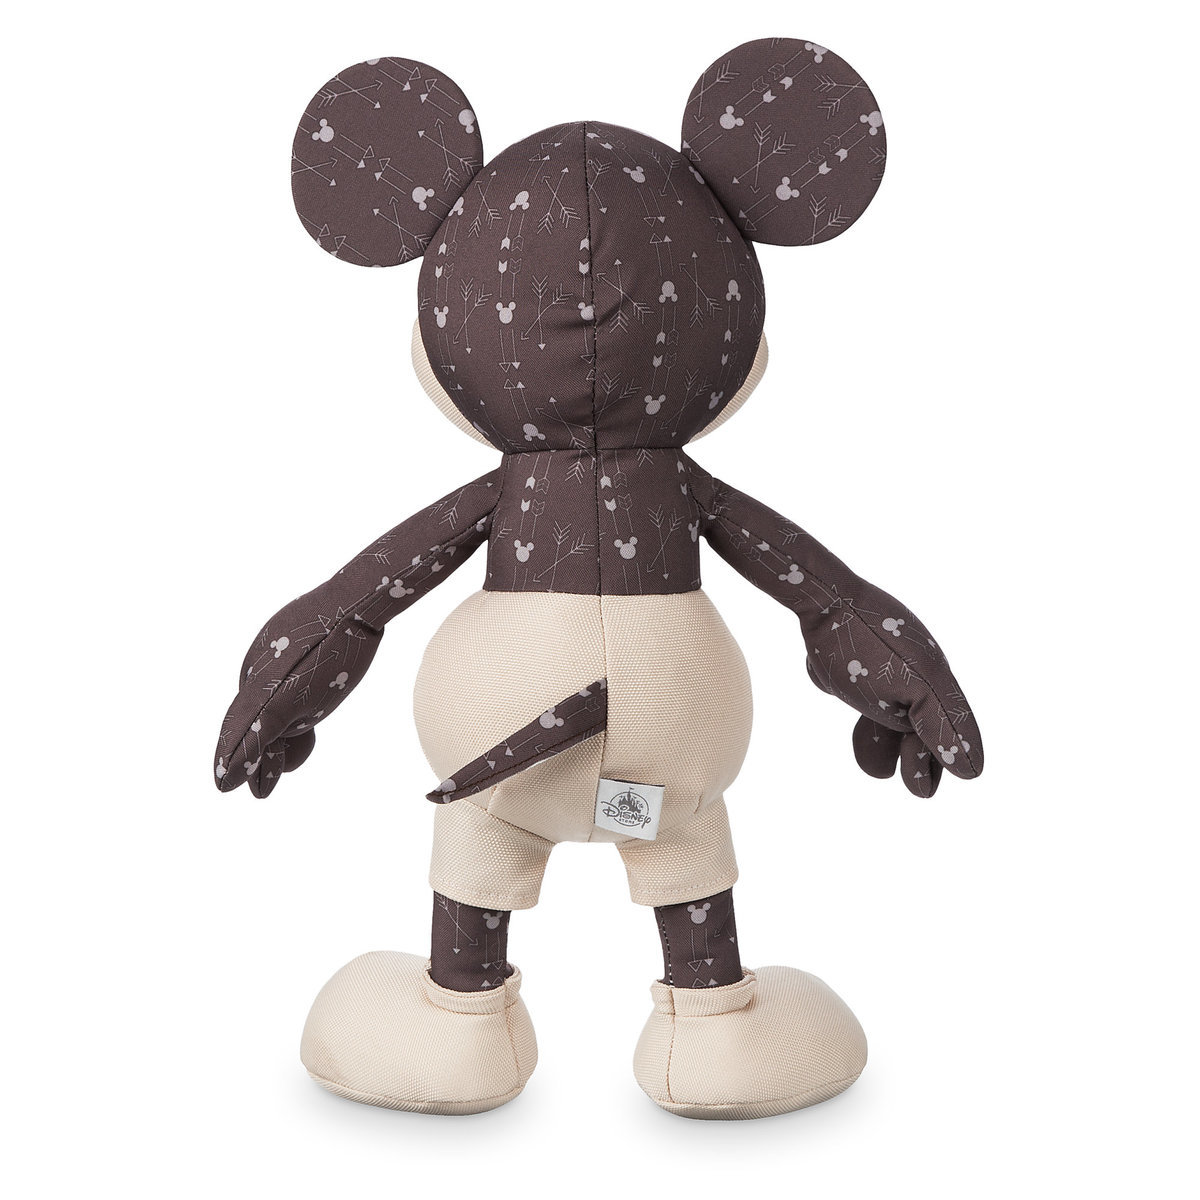 50c0eb34607 Product Image of Mickey Mouse Memories Plush - Medium - November - Limited  Release   2